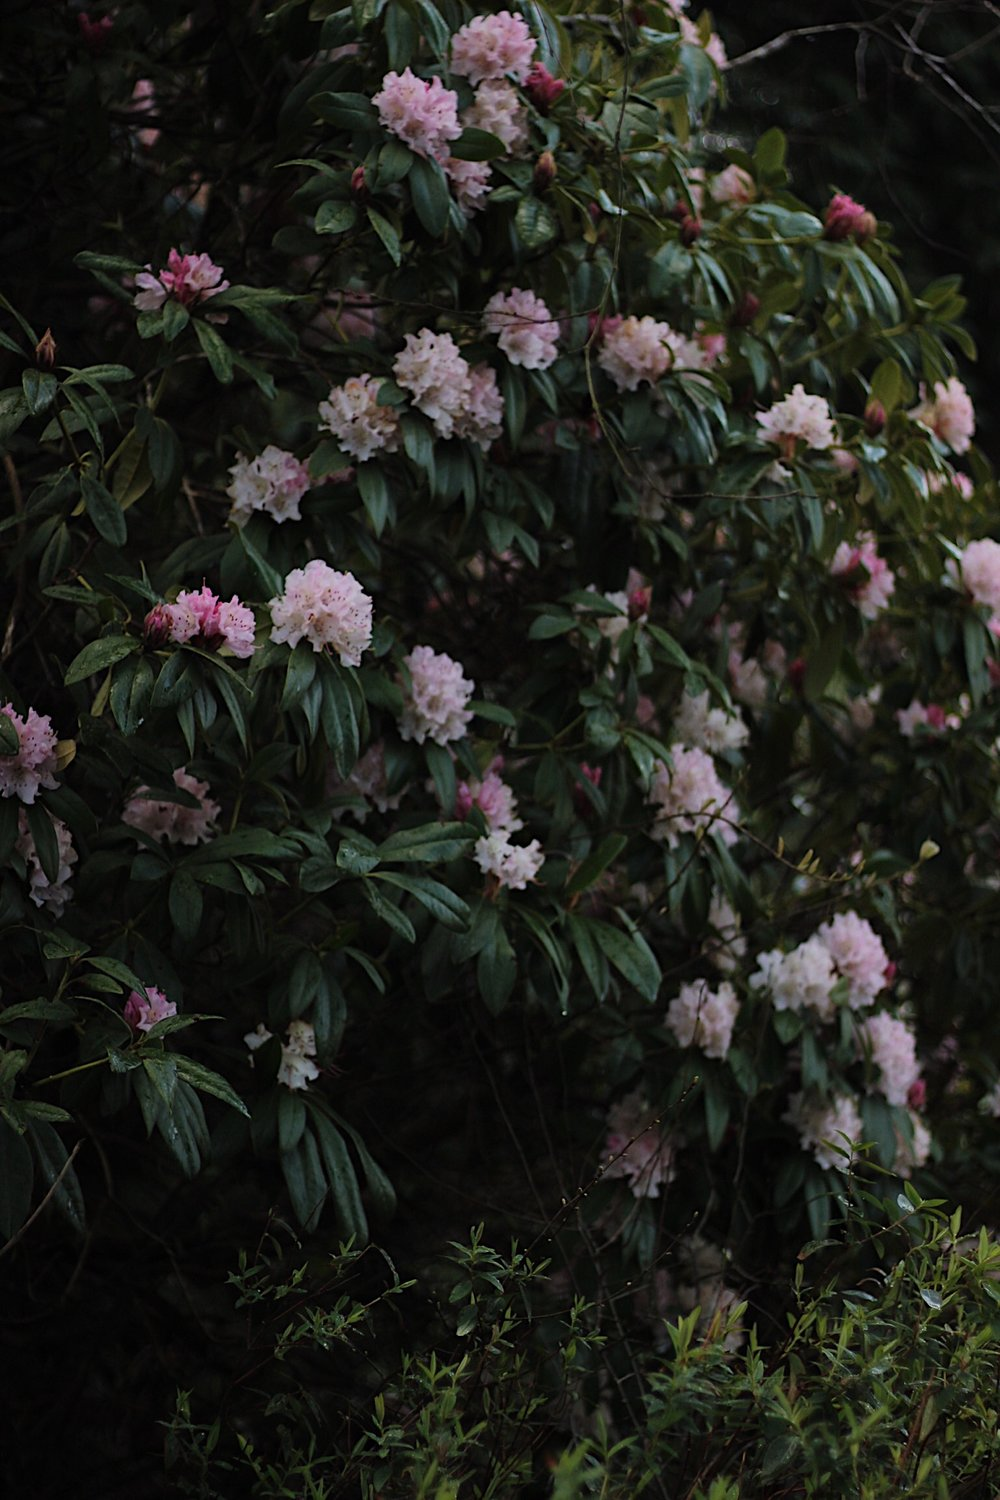 Rhododendron bush with pink flowers